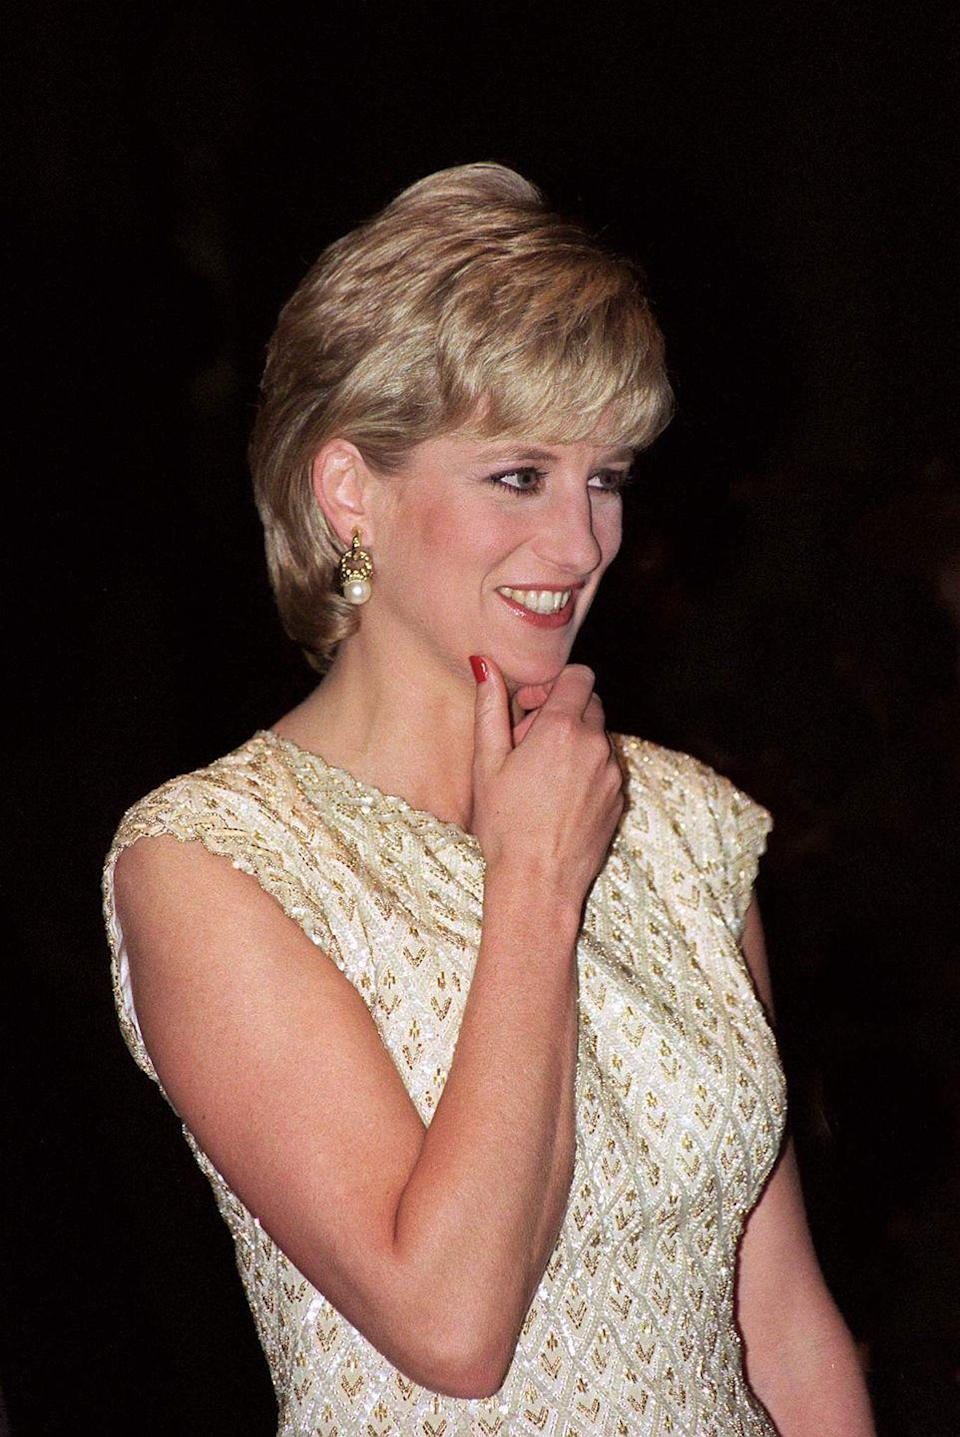 """<p>Princess Diana chose to accessorize simply with a pair of gold and pearl earrings for a 1996 ballet performance of """"Alice in Wonderland.""""<br></p><p><strong>More</strong>: <a href=""""https://www.townandcountrymag.com/society/tradition/g25919230/royal-family-ballet-photos/"""" rel=""""nofollow noopener"""" target=""""_blank"""" data-ylk=""""slk:Royals at the Ballet"""" class=""""link rapid-noclick-resp"""">Royals at the Ballet</a> </p>"""